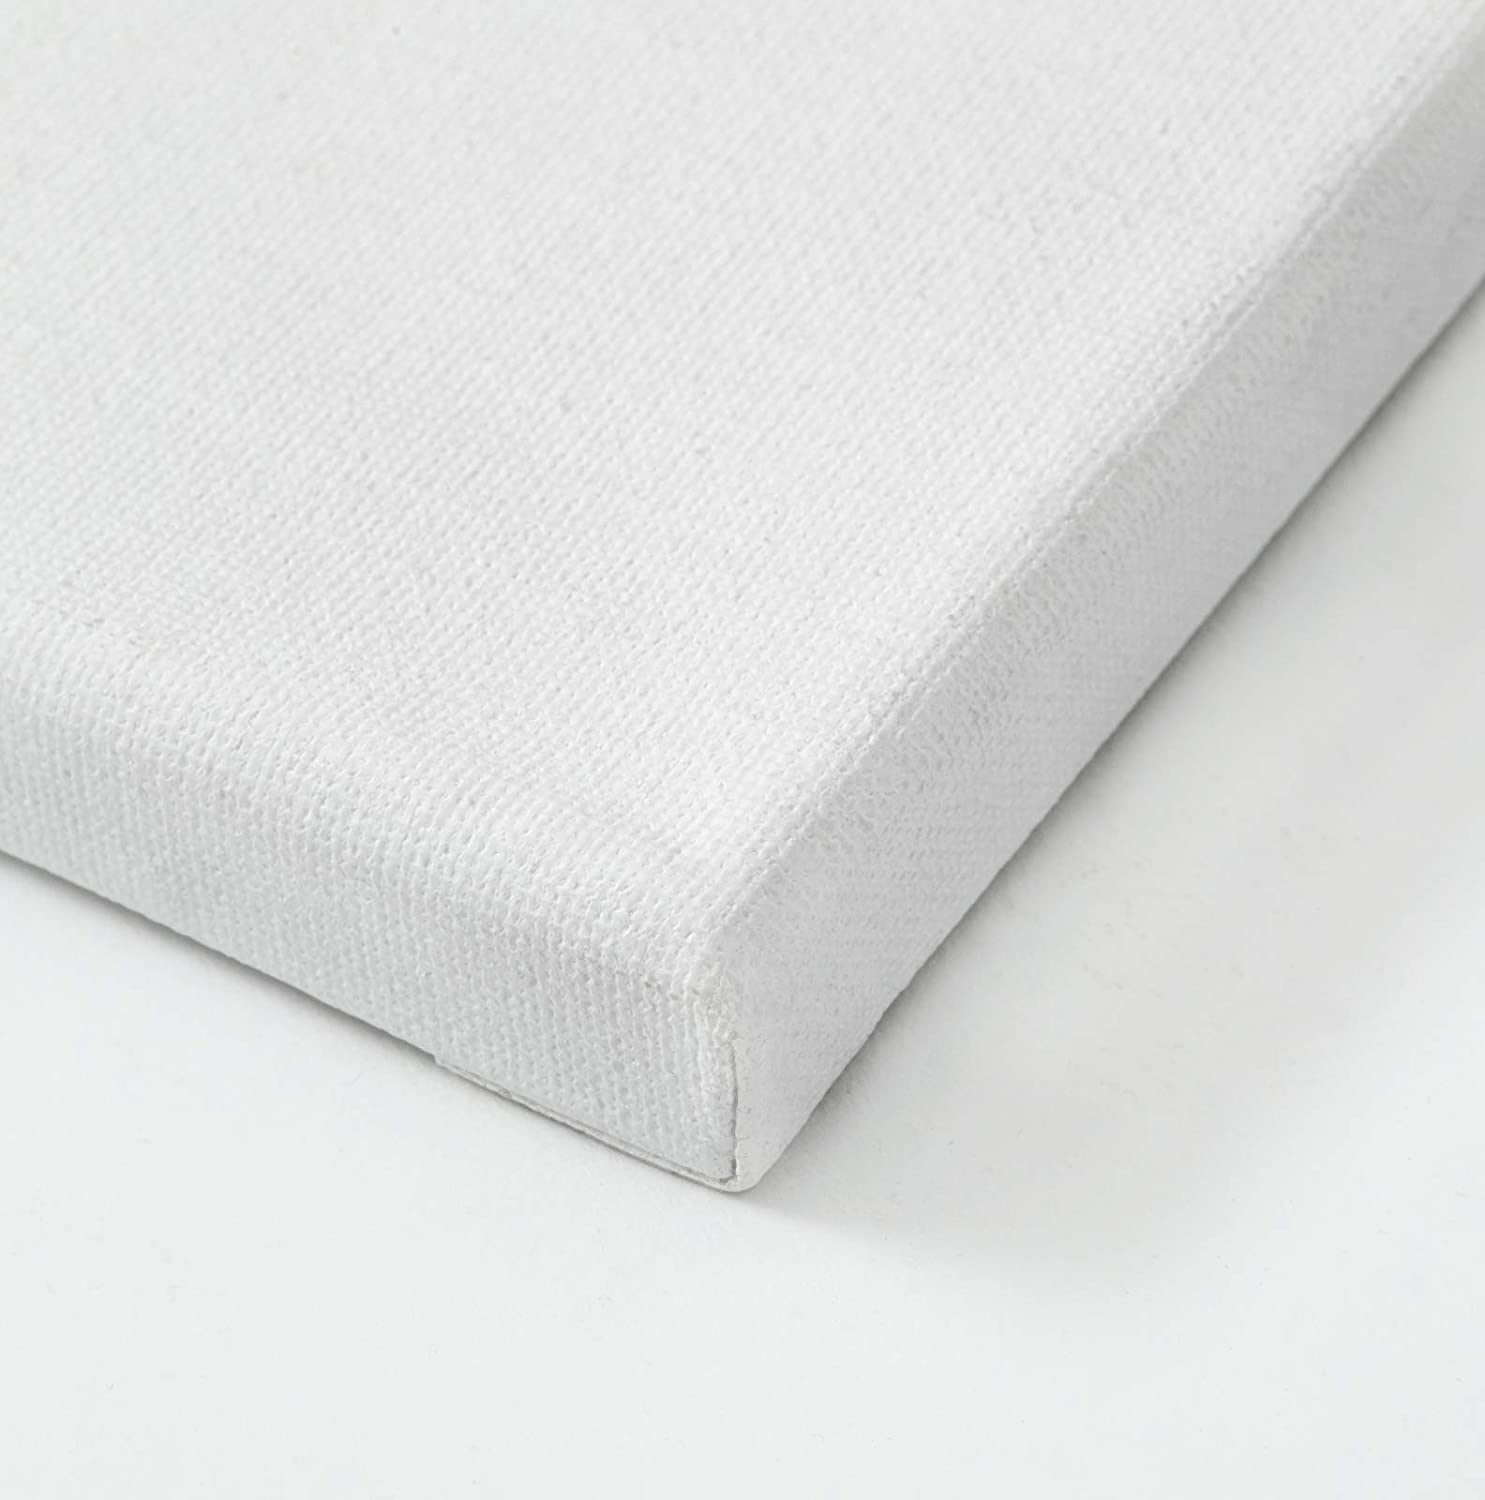 miniature 28 - Americanflat Stretched Canvas in White 100% Cotton Wooden Frames & Acid Free